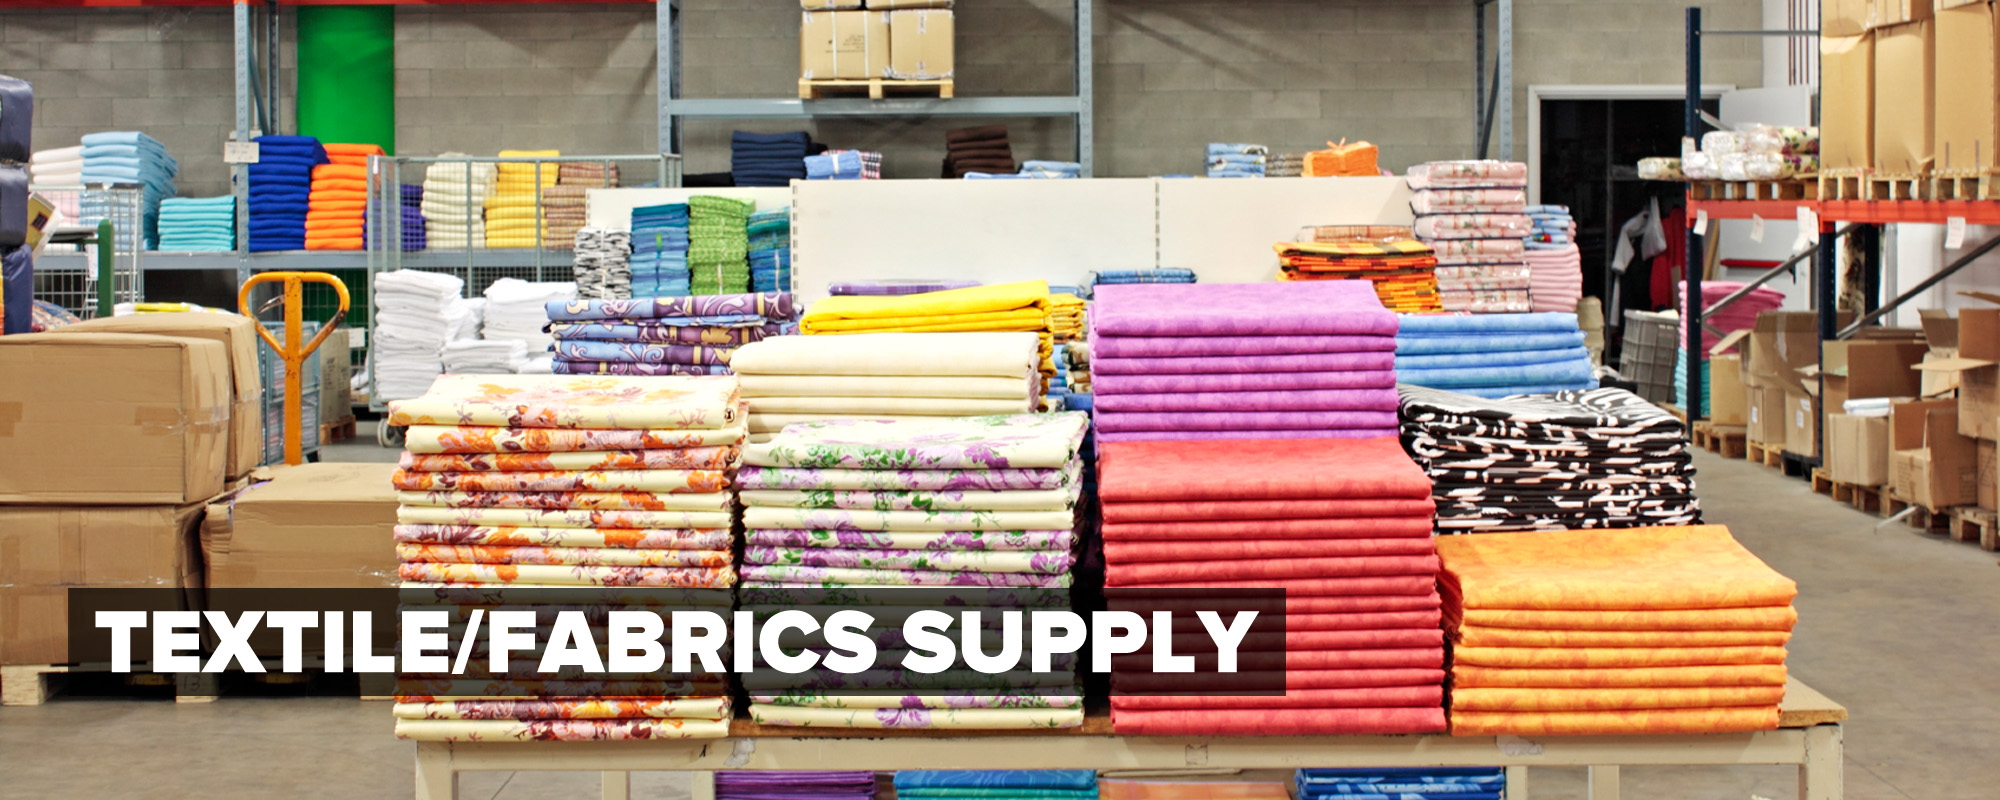 fabric sourcing practice for apparel manufacturing Apparel sourcing decisions can make or break an apparel business  by integrating the fabric with these new technologies, companies can also  reshoring is the practice of bringing manufacturing and services back to the.